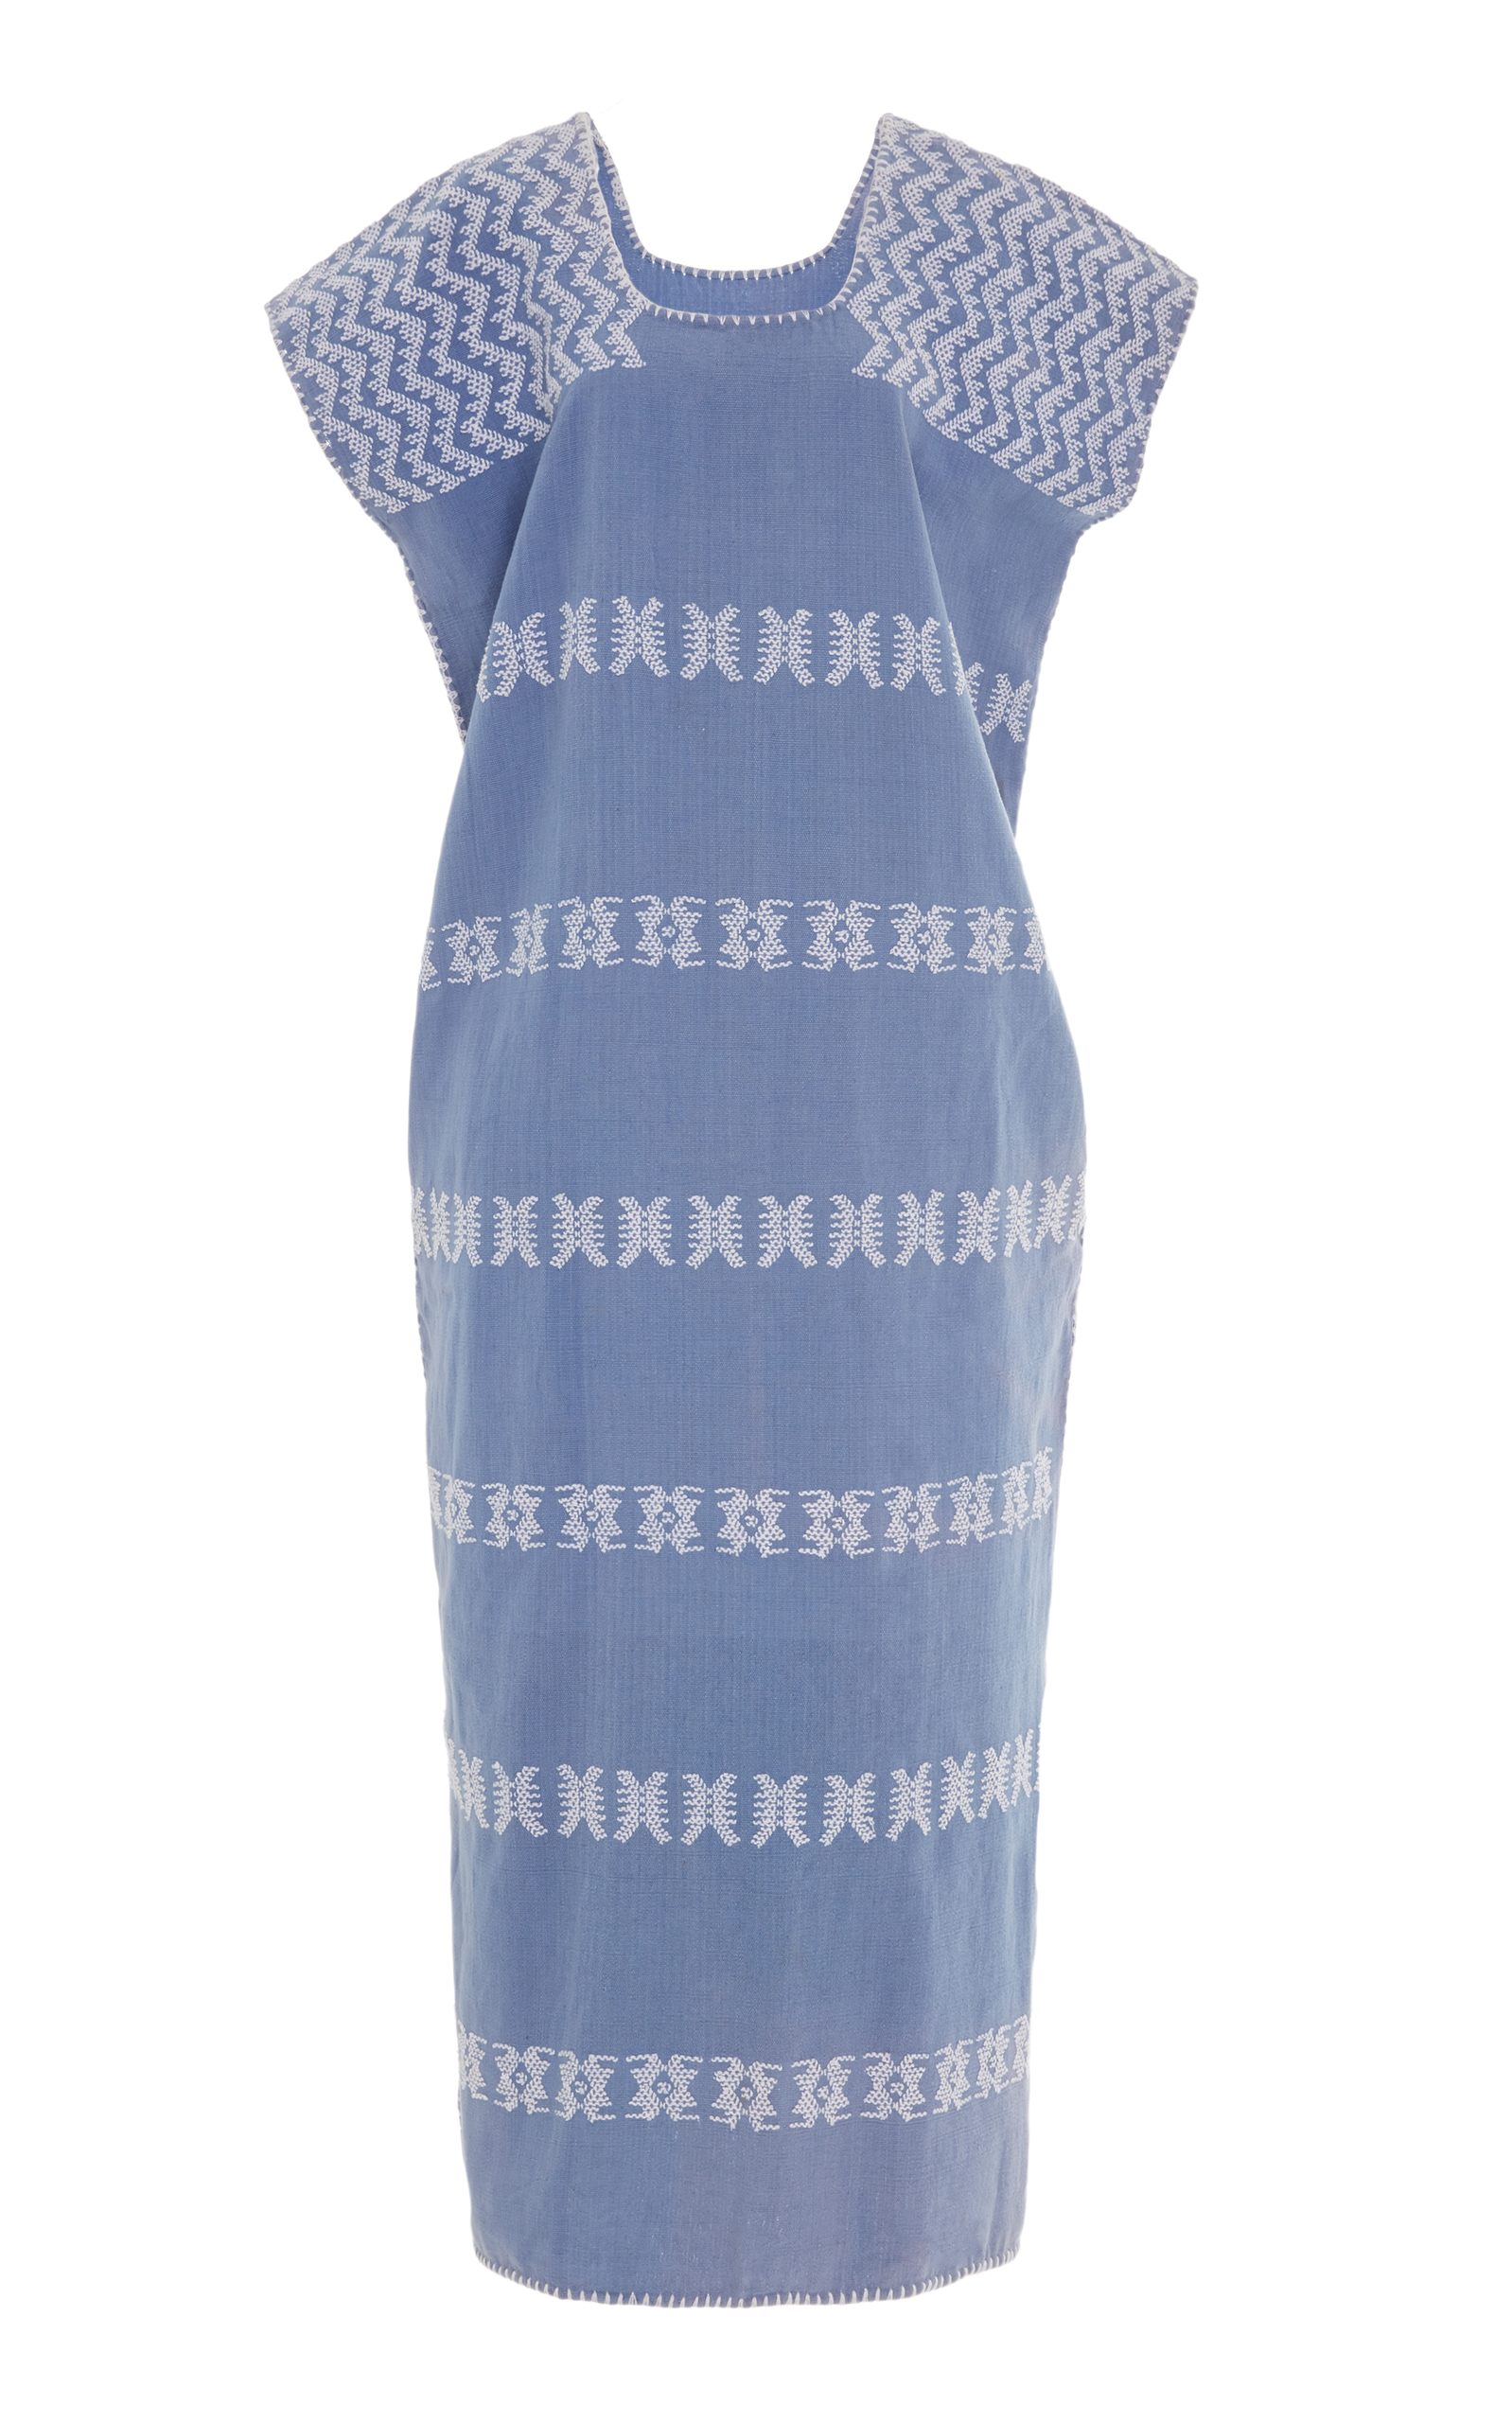 PIPPA HOLT EMBROIDERED COTTON KAFTAN